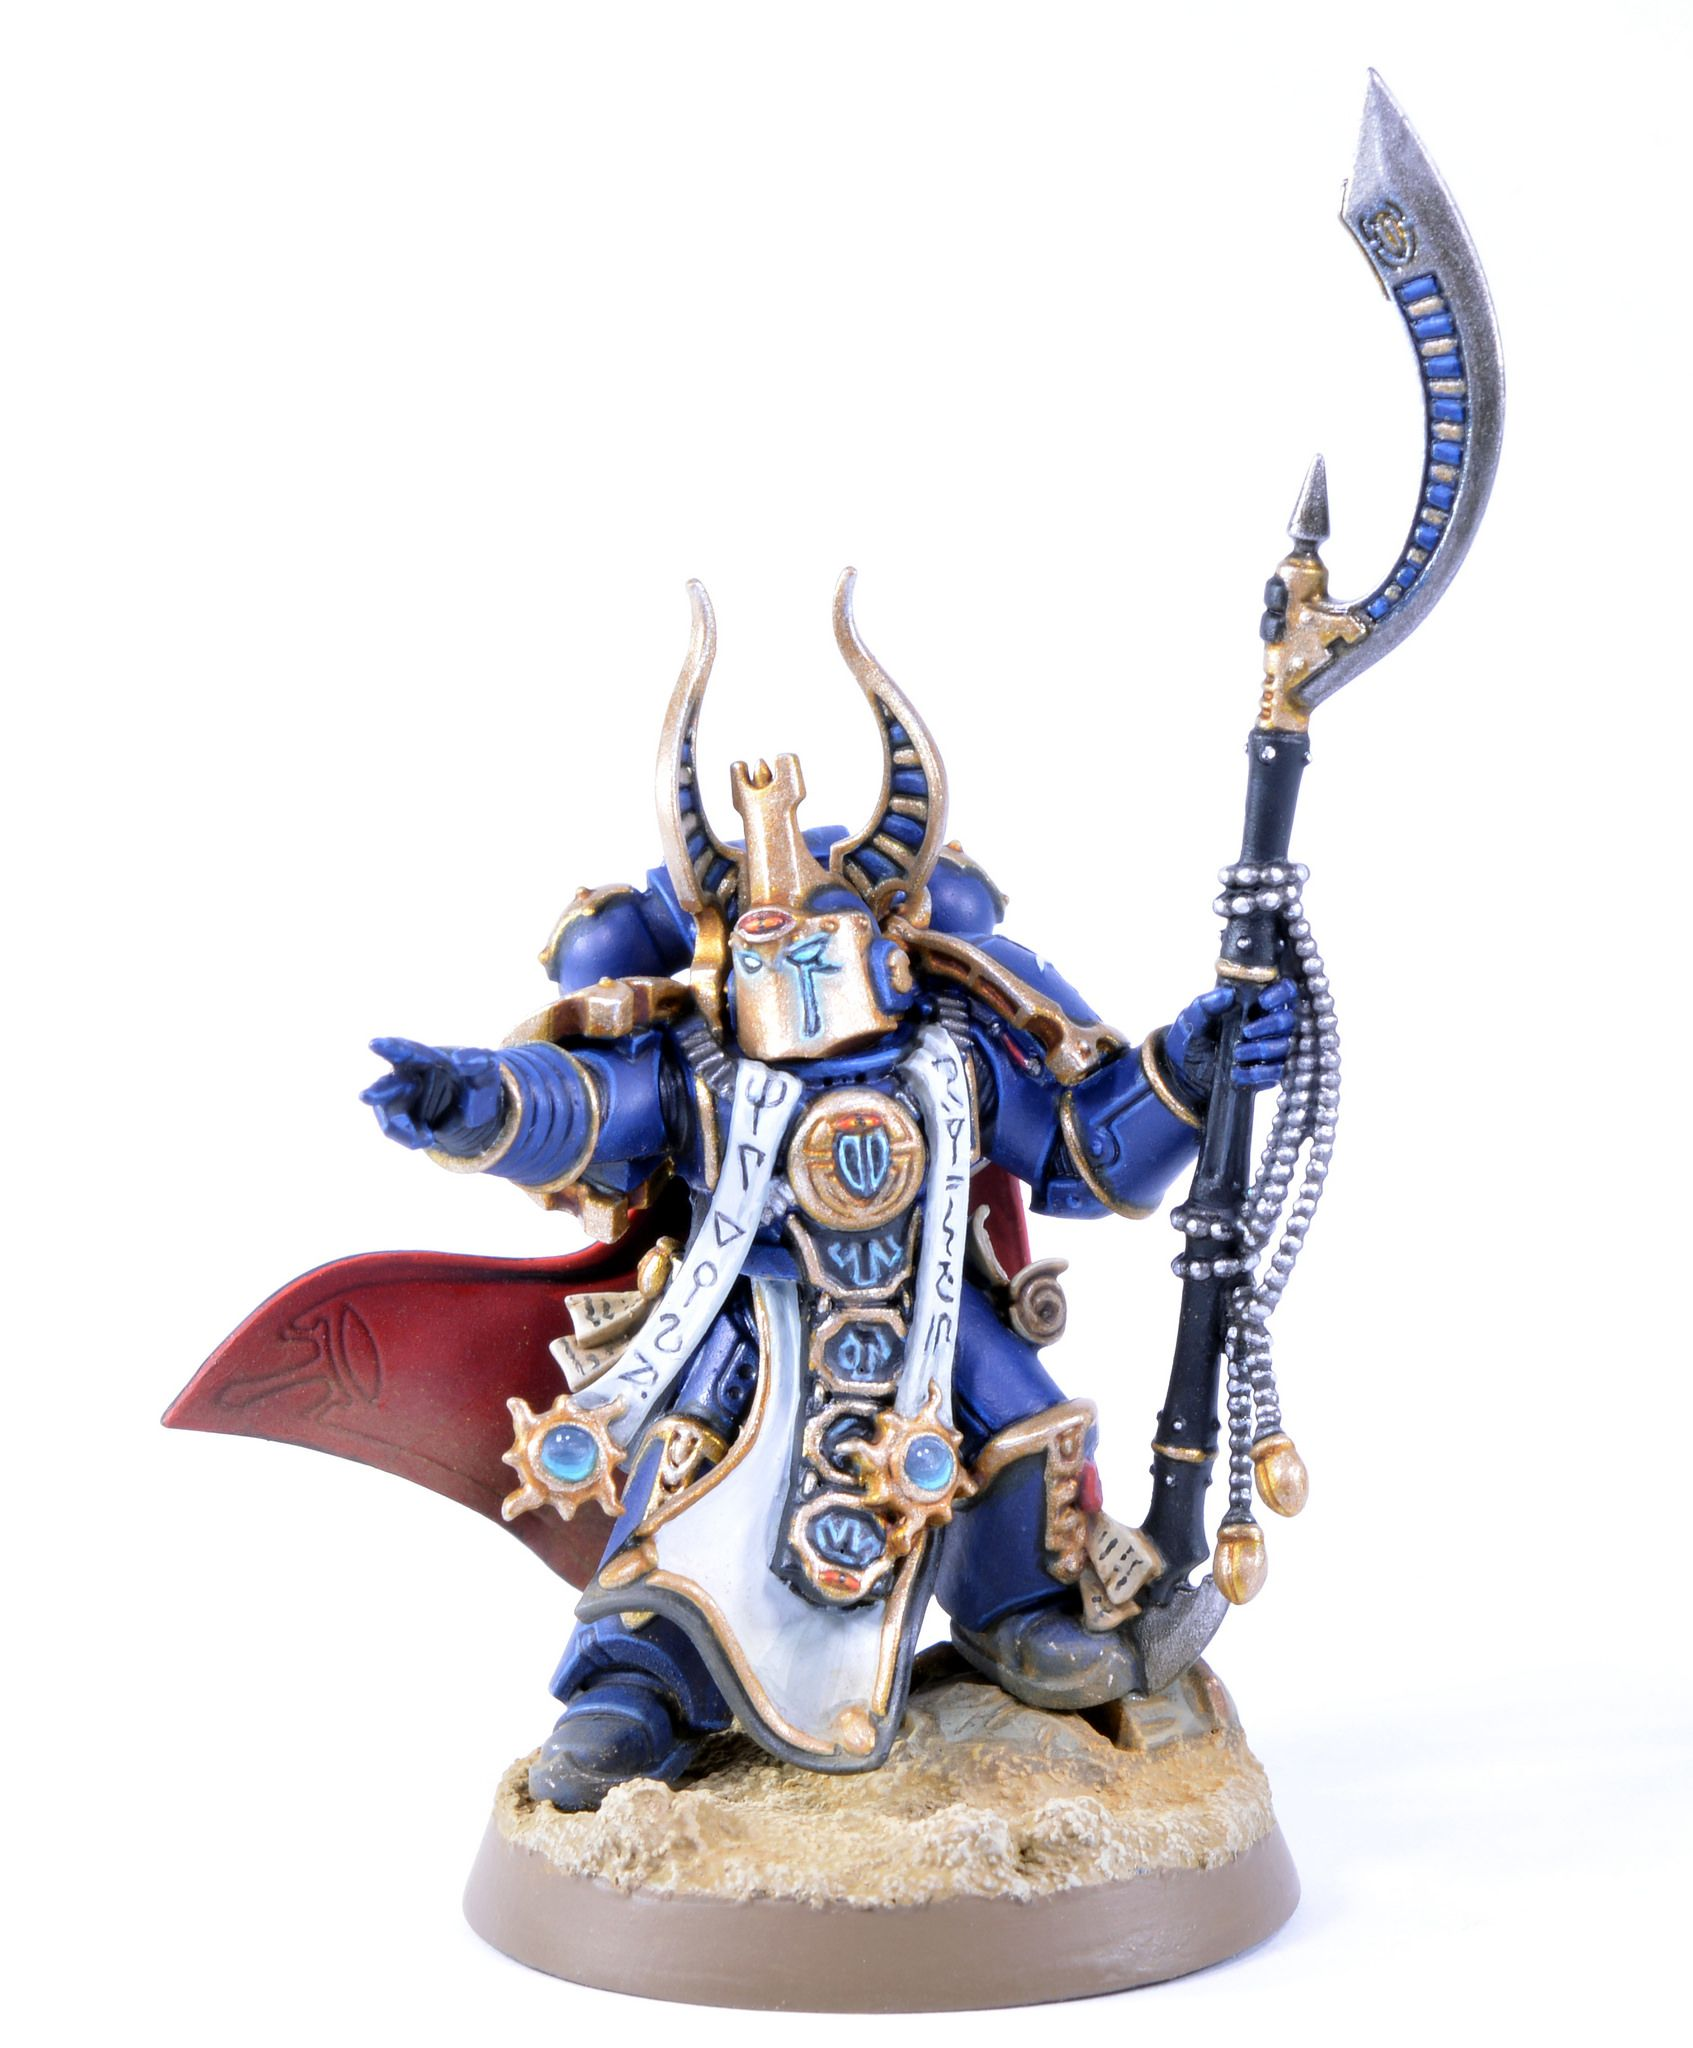 https://flic.kr/p/NVp43x | Ahriman | From the GW Burning of Prospero Boxset Painted by Brushstroke